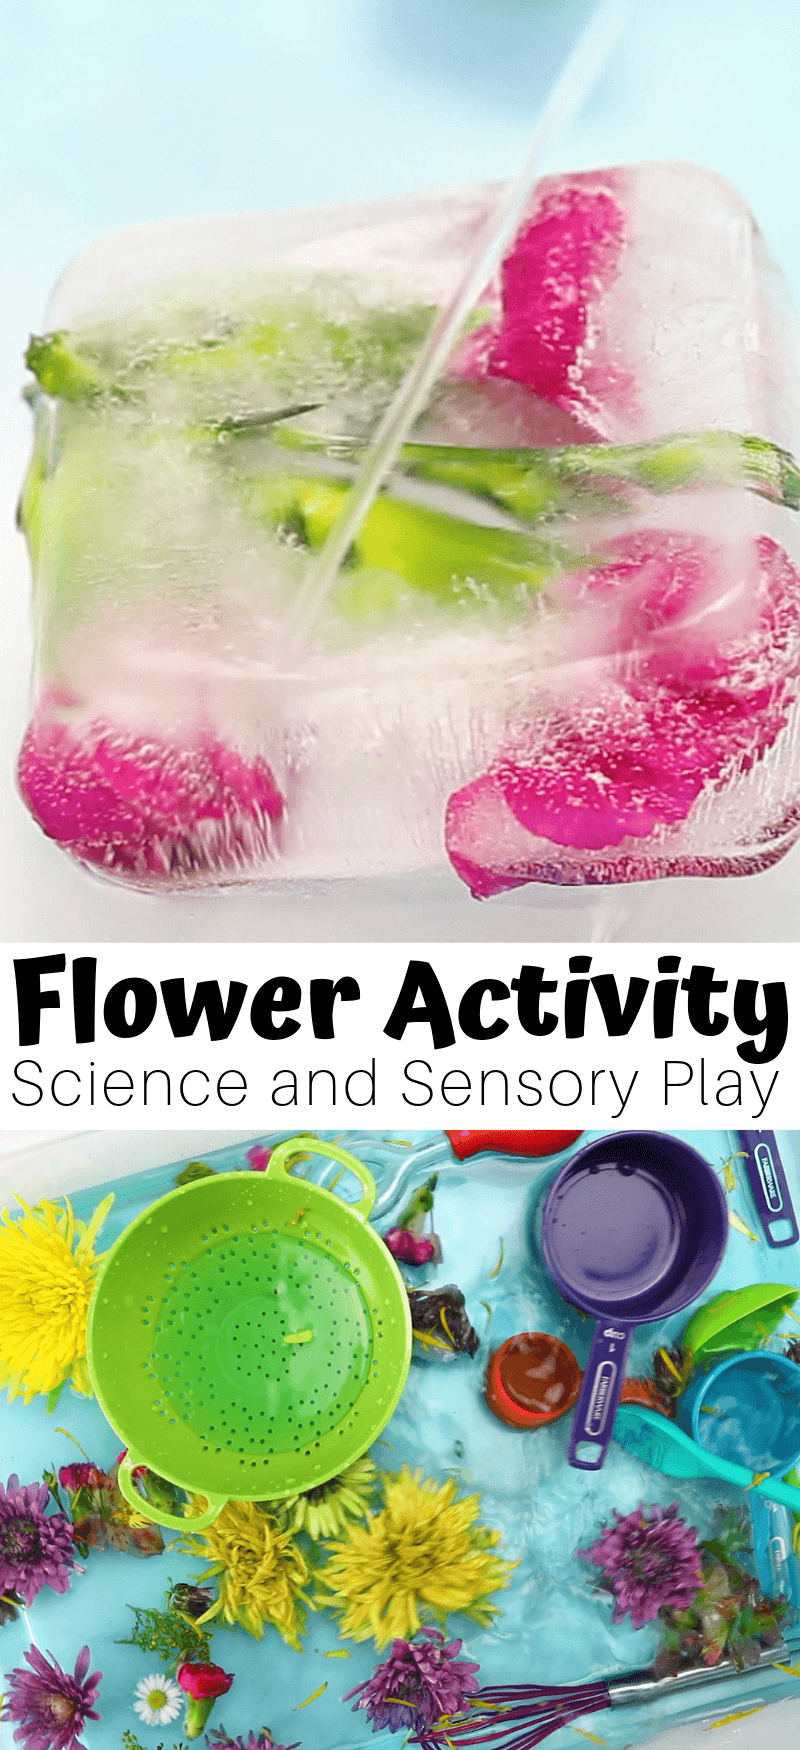 3 in 1 flower activities for preschoolers.